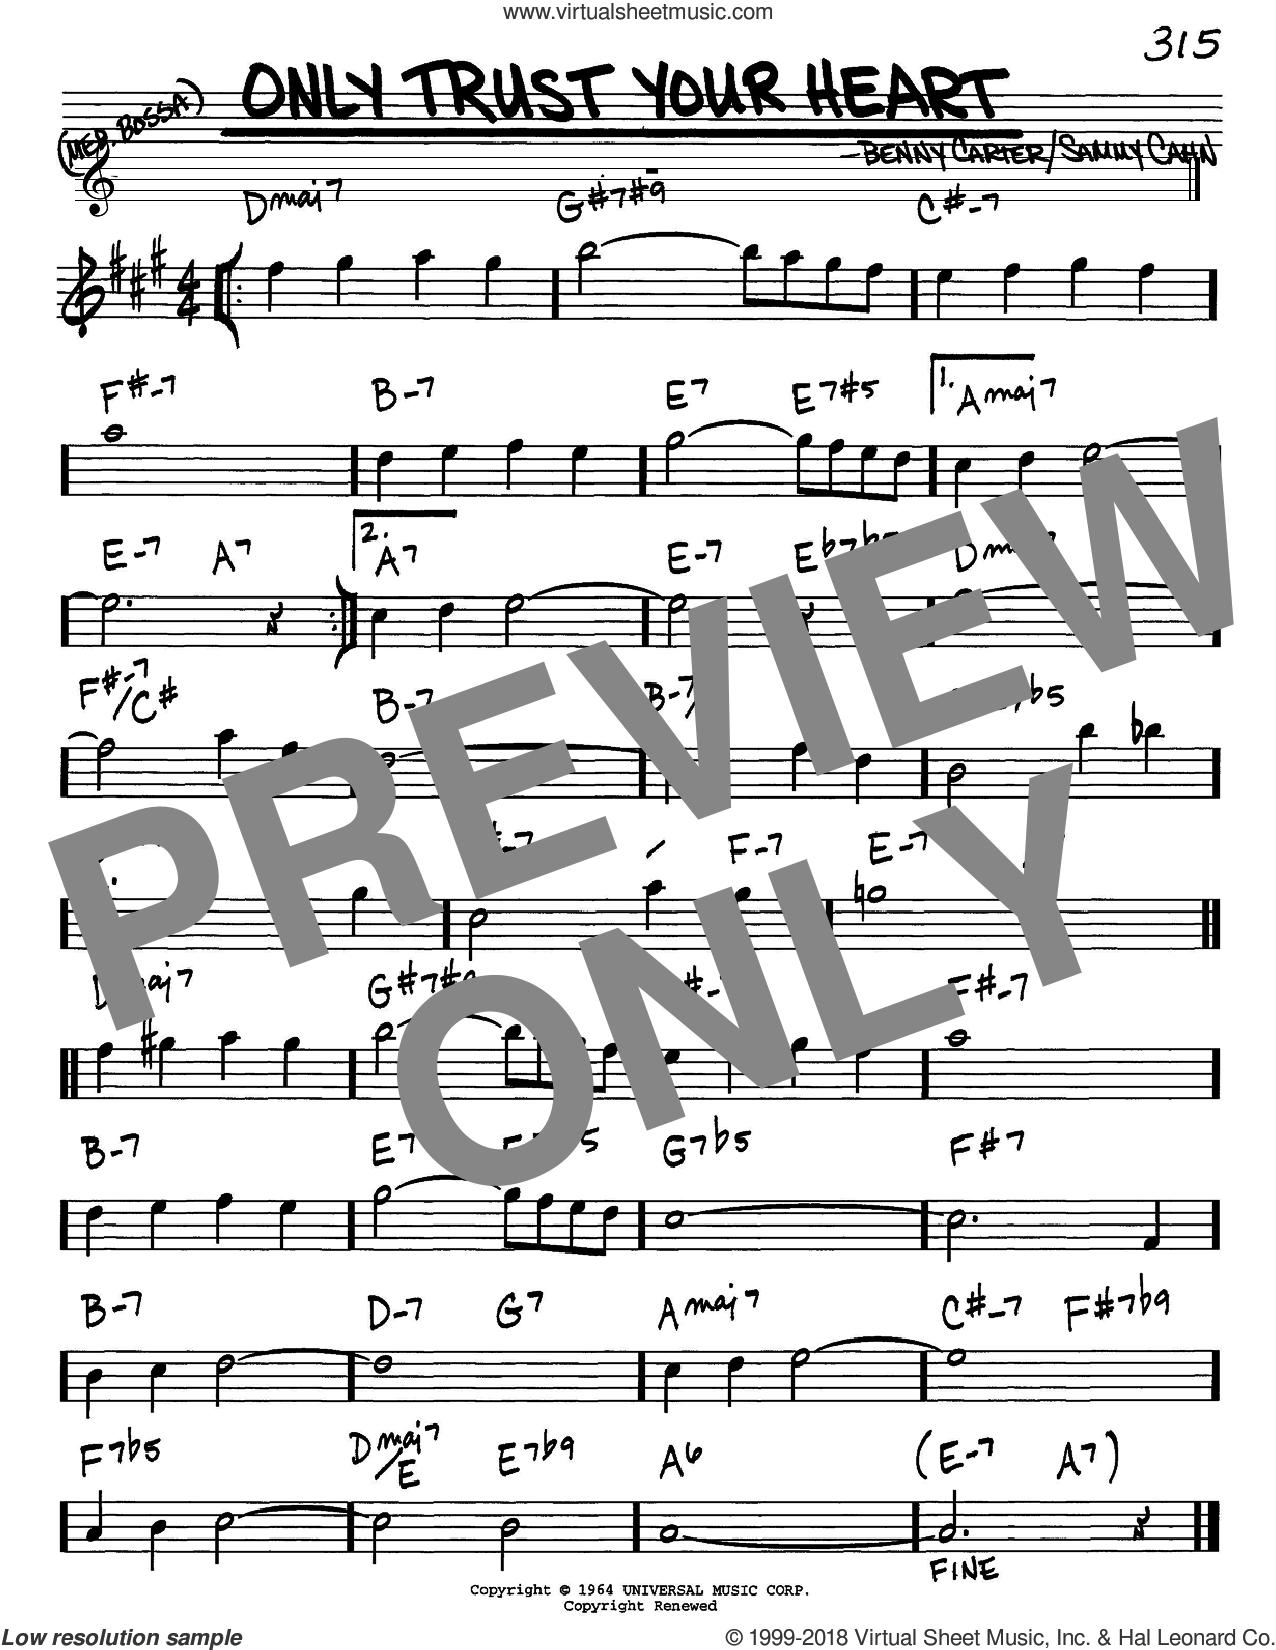 Only Trust Your Heart sheet music for voice and other instruments (Eb) by Benny Carter and Sammy Cahn. Score Image Preview.